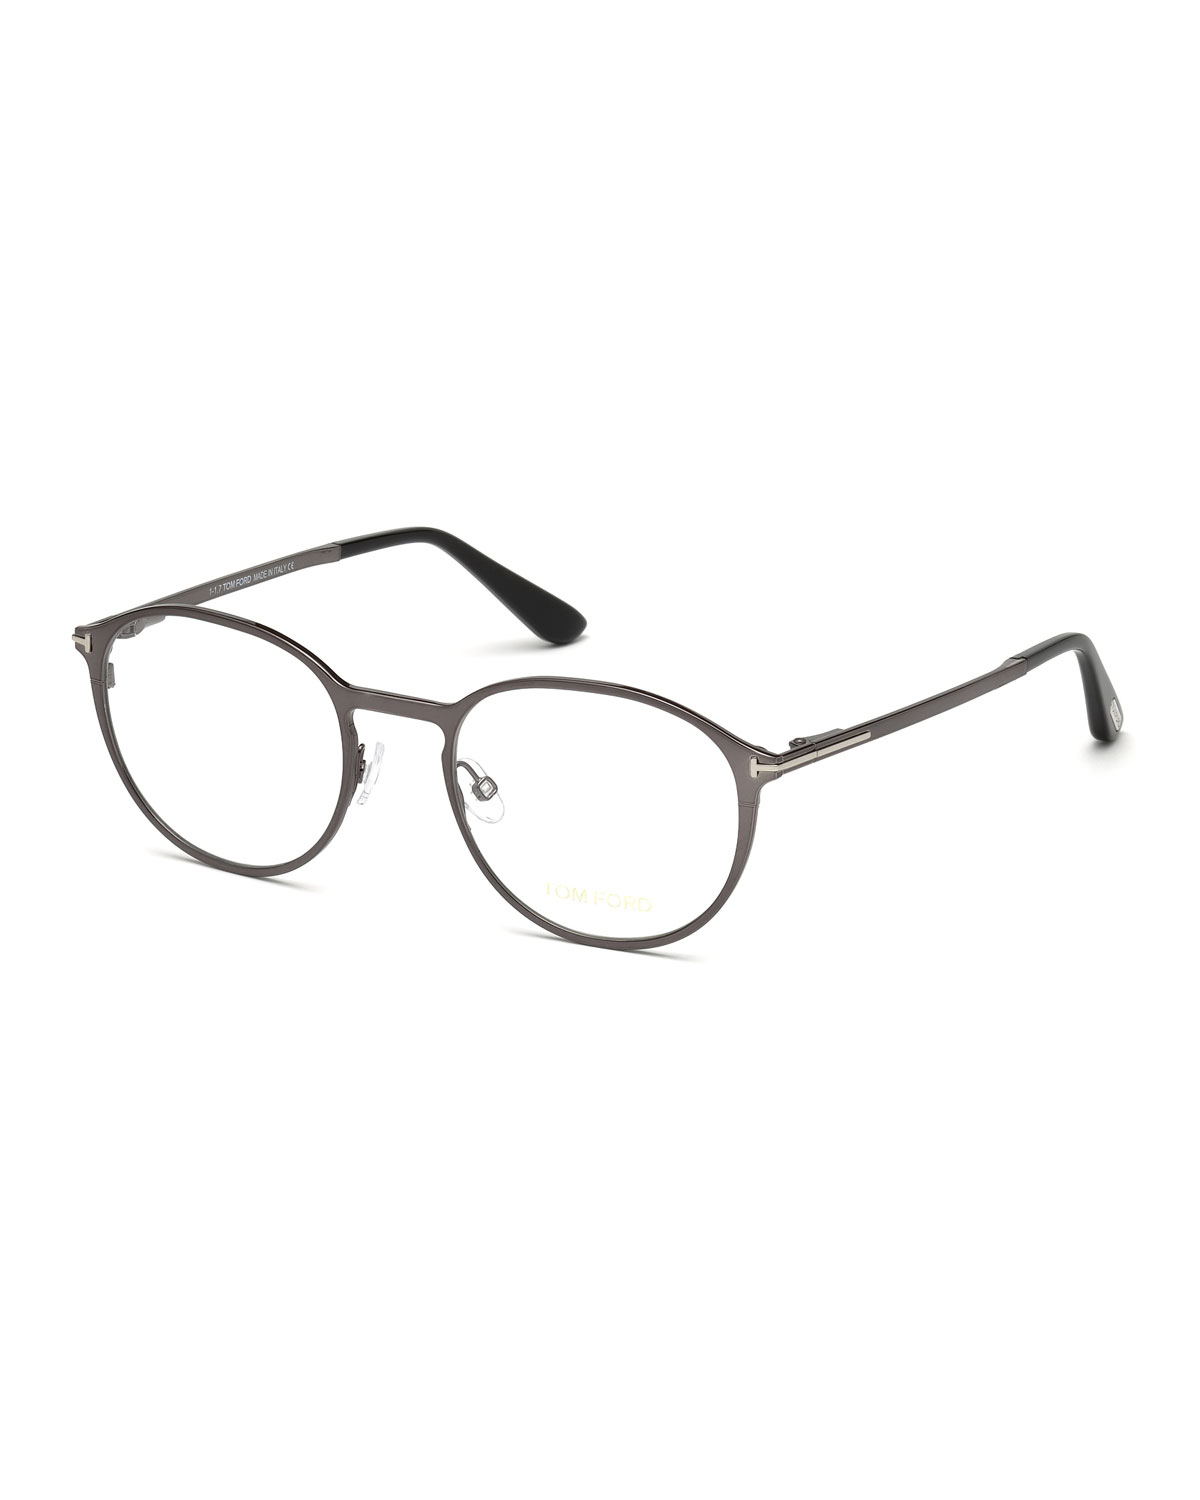 Tom Ford Clear Frames | Neiman Marcus